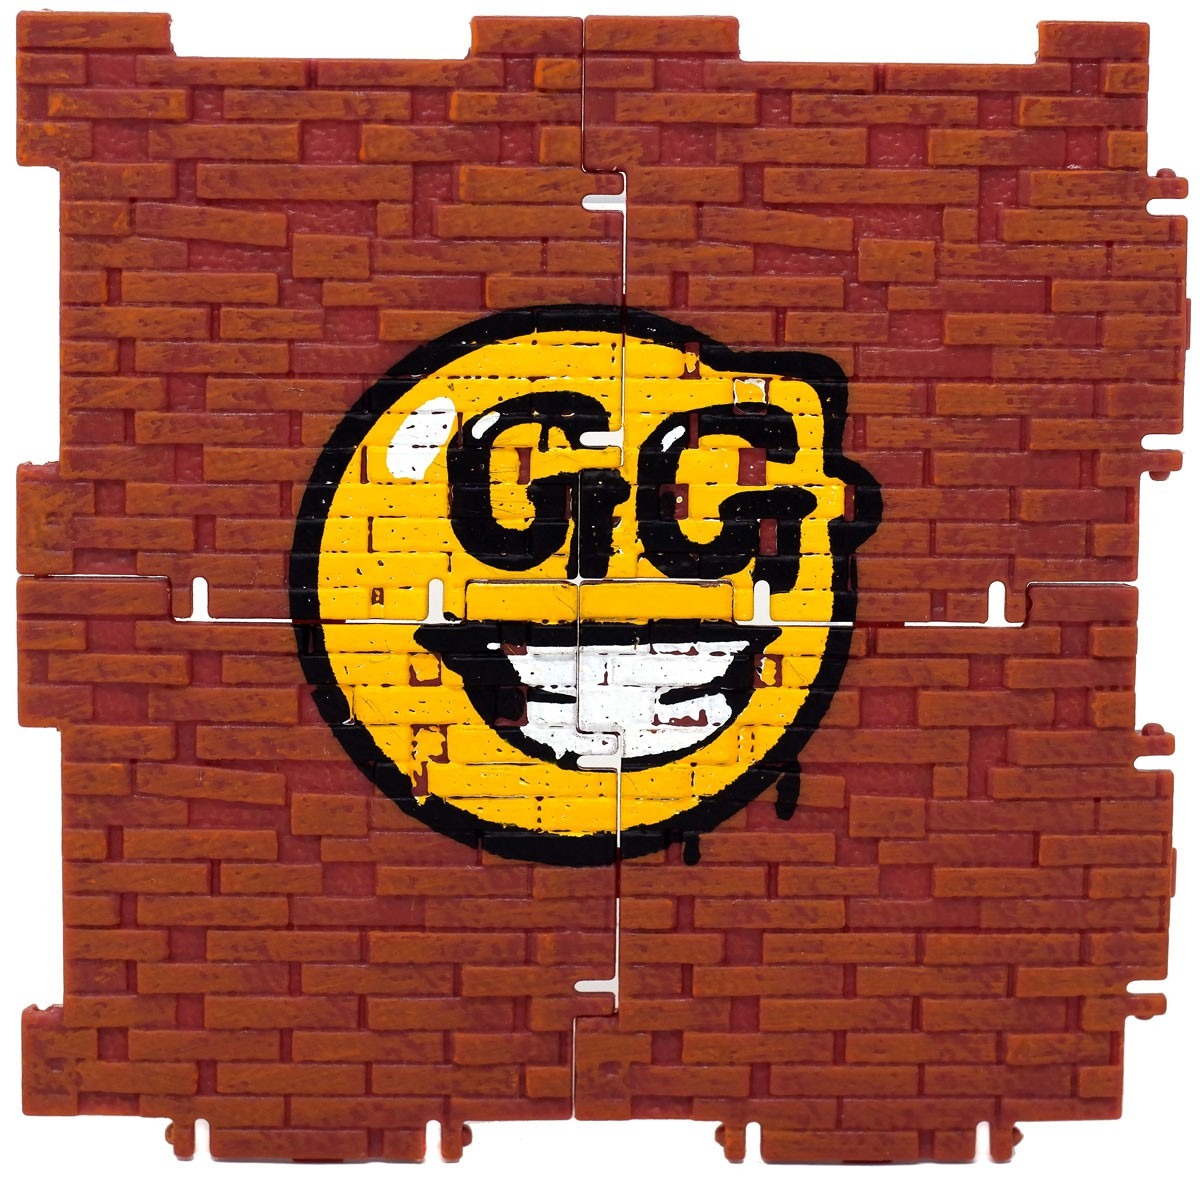 Fortnite Building Material with GG smiley face Figure Accessory [No Packaging]